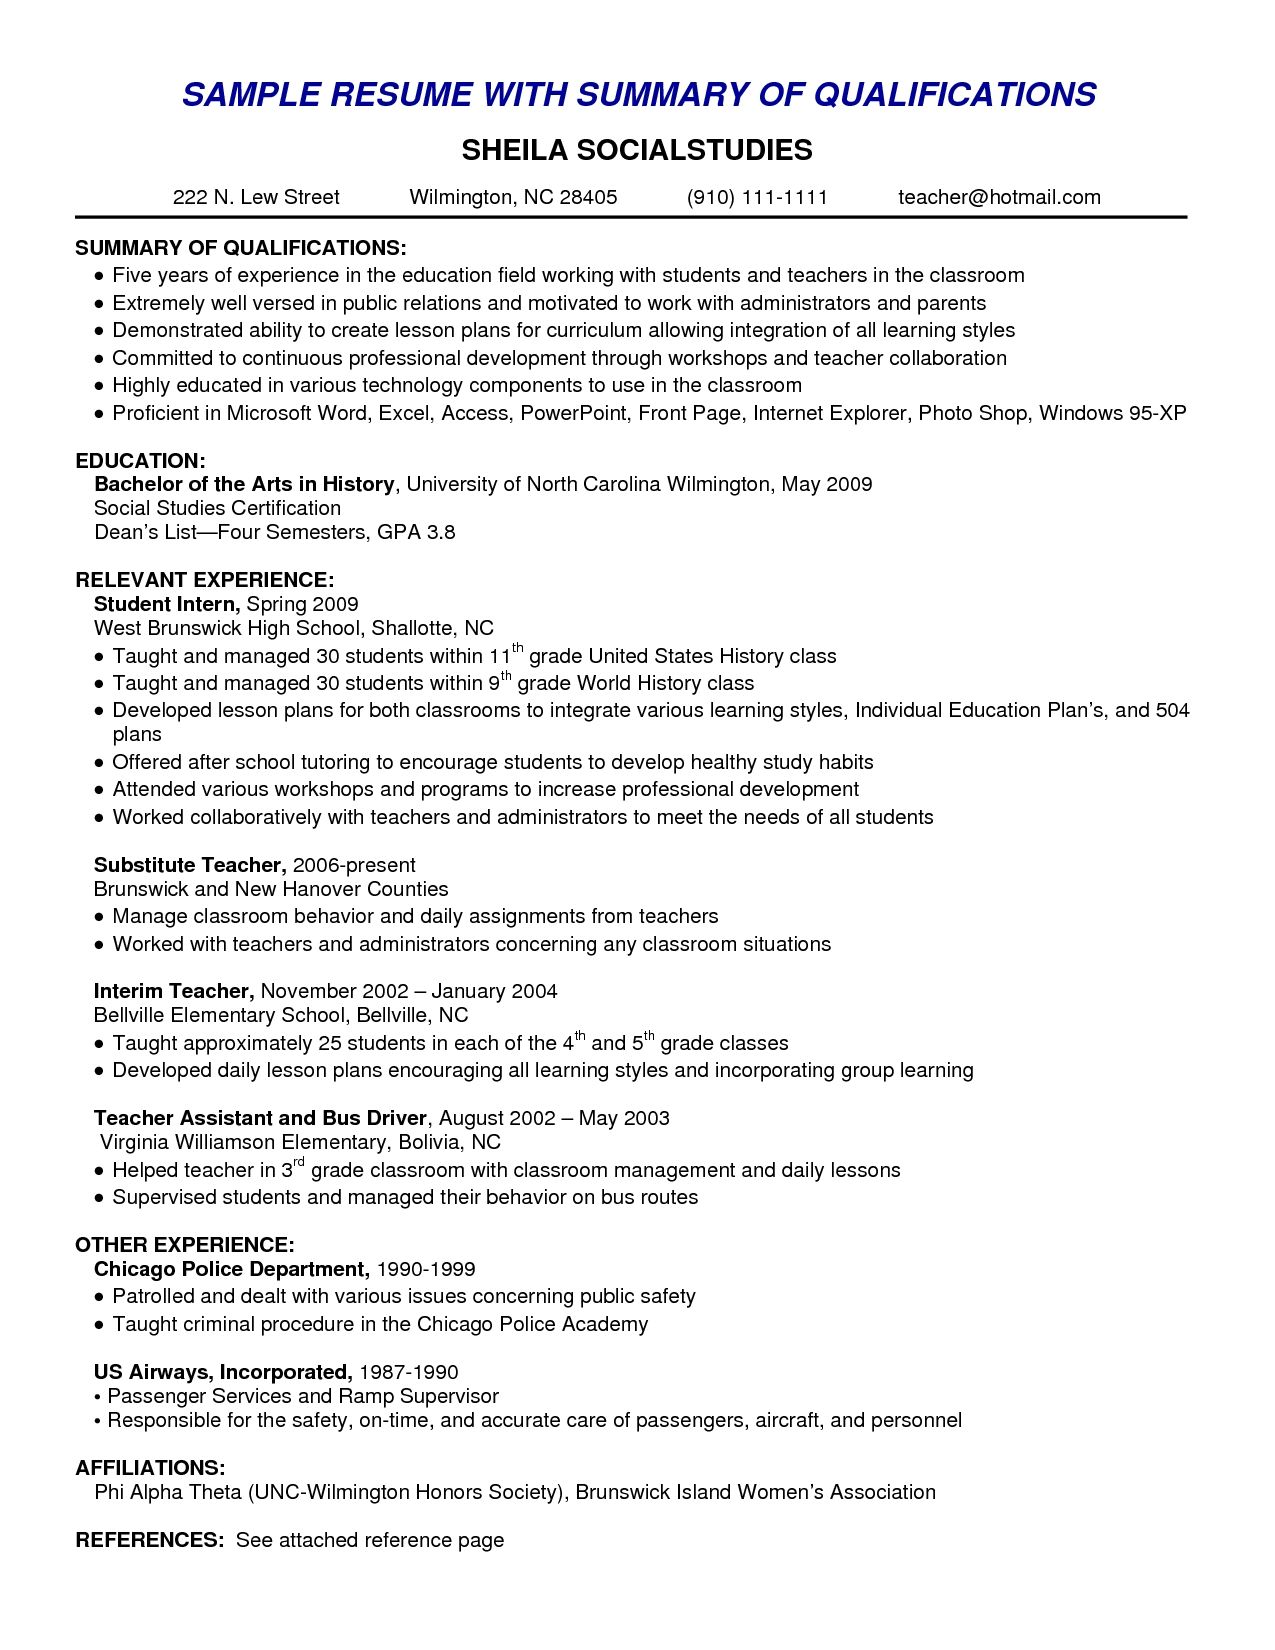 Example Of A Summary For A Resume Impressive Resume Skills Summary Examples Example Of Skills Summary For Resume .